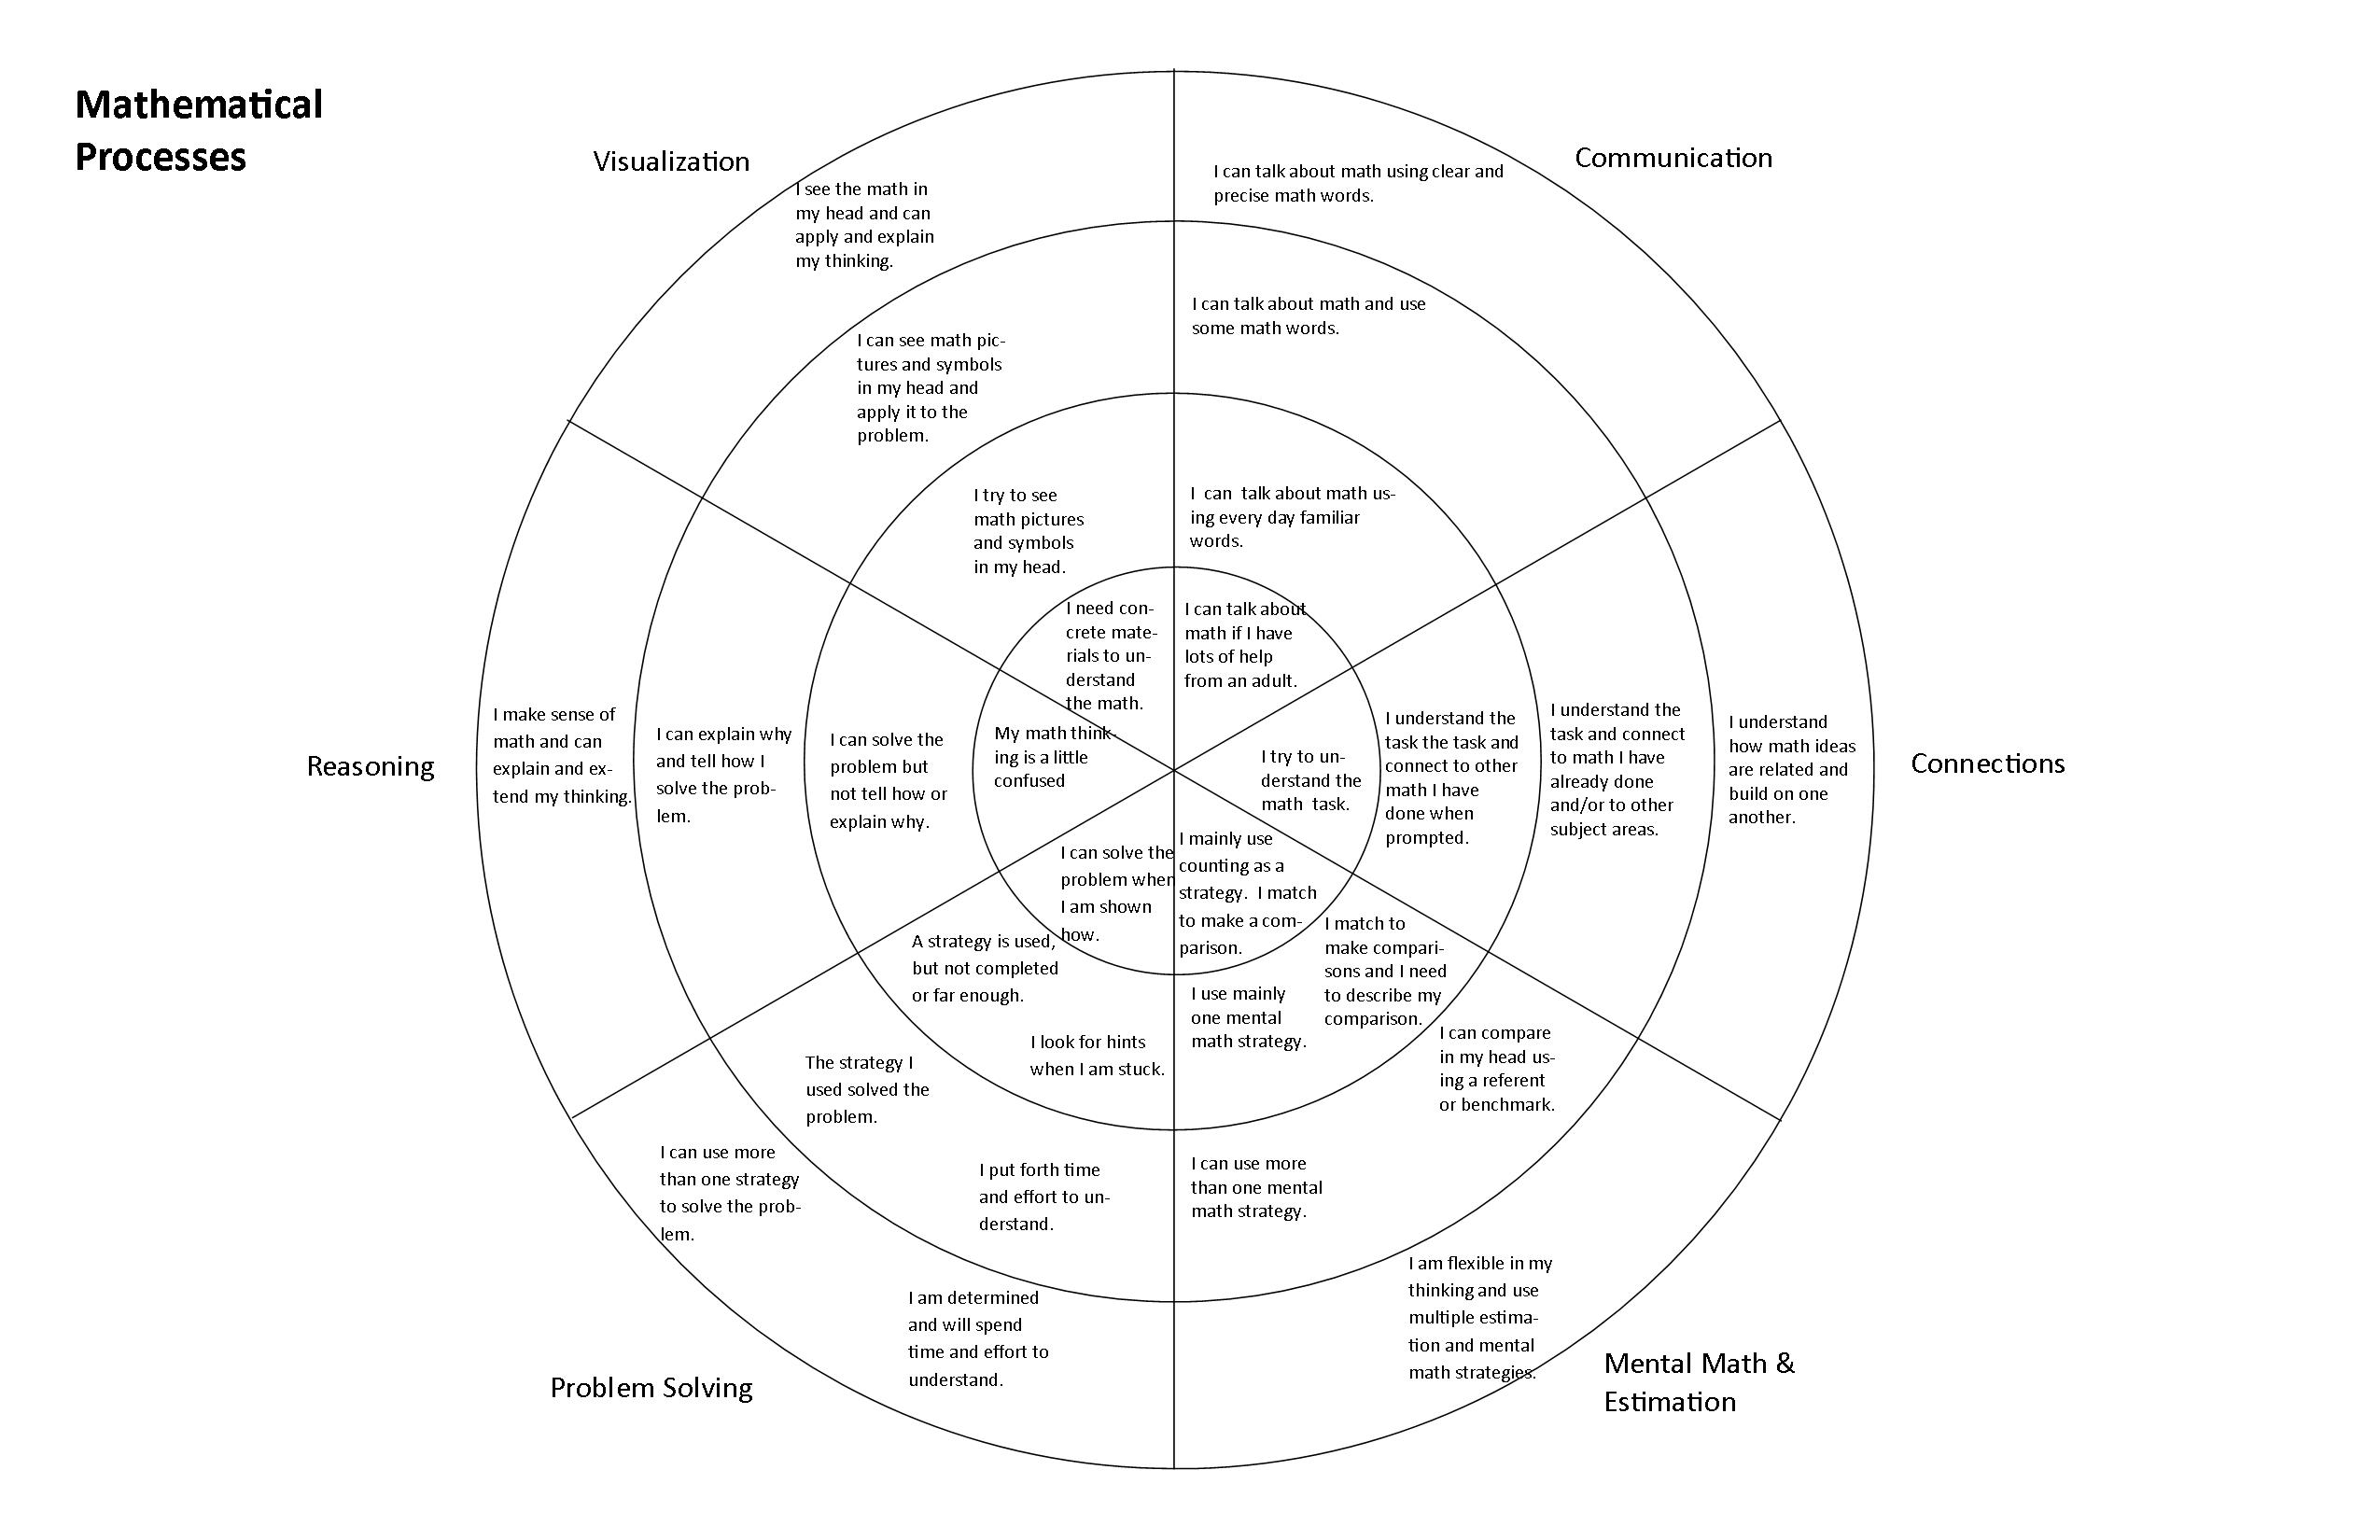 Respectful, Transparent Assessment With a Focus on Growth